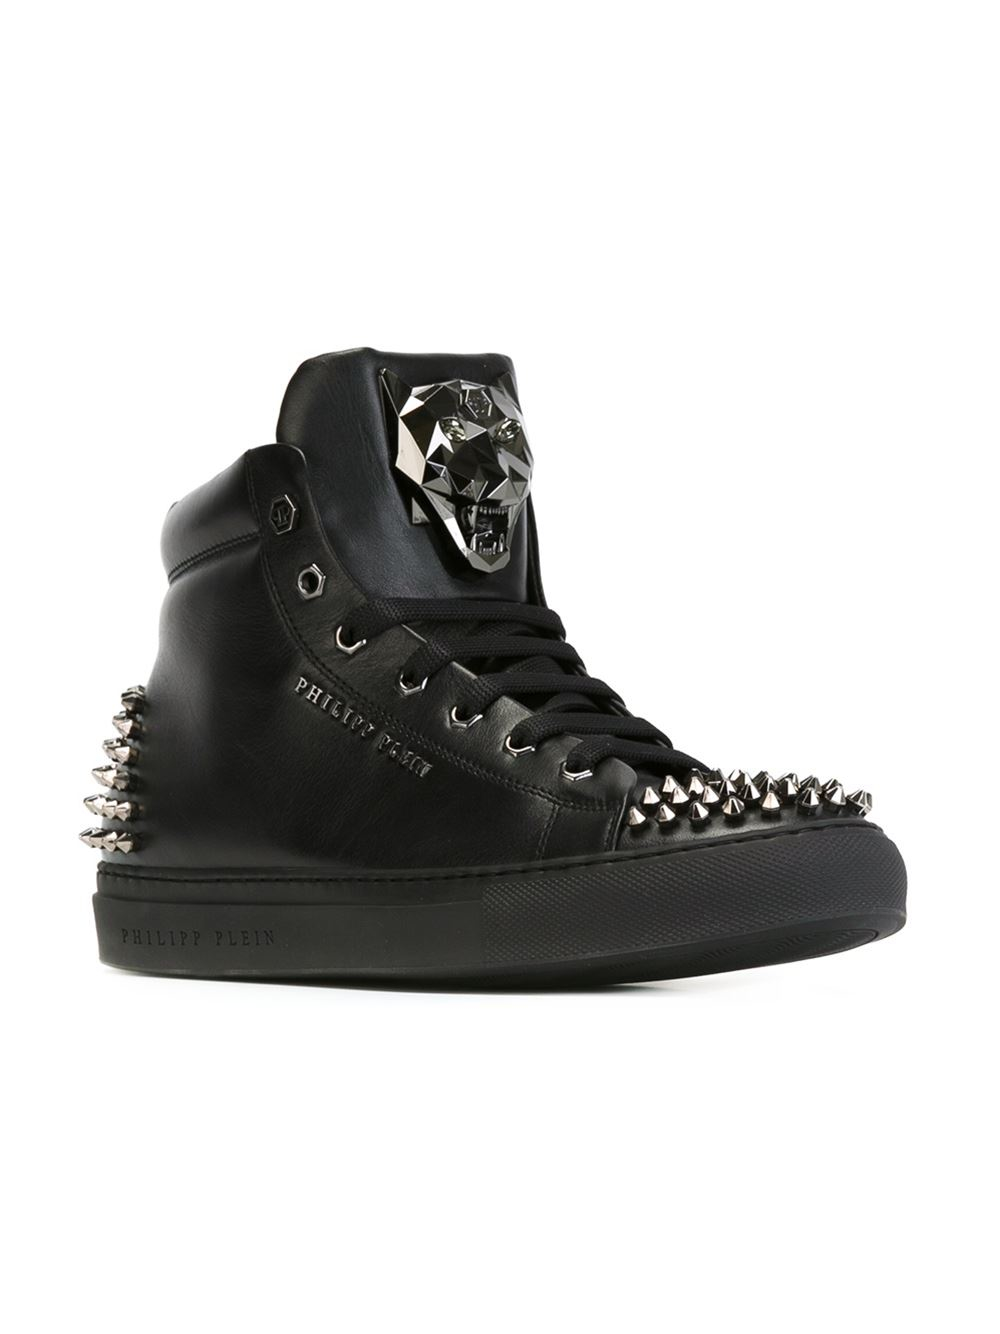 Philipp Plein Spike Studded Leather High Top Sneakers In